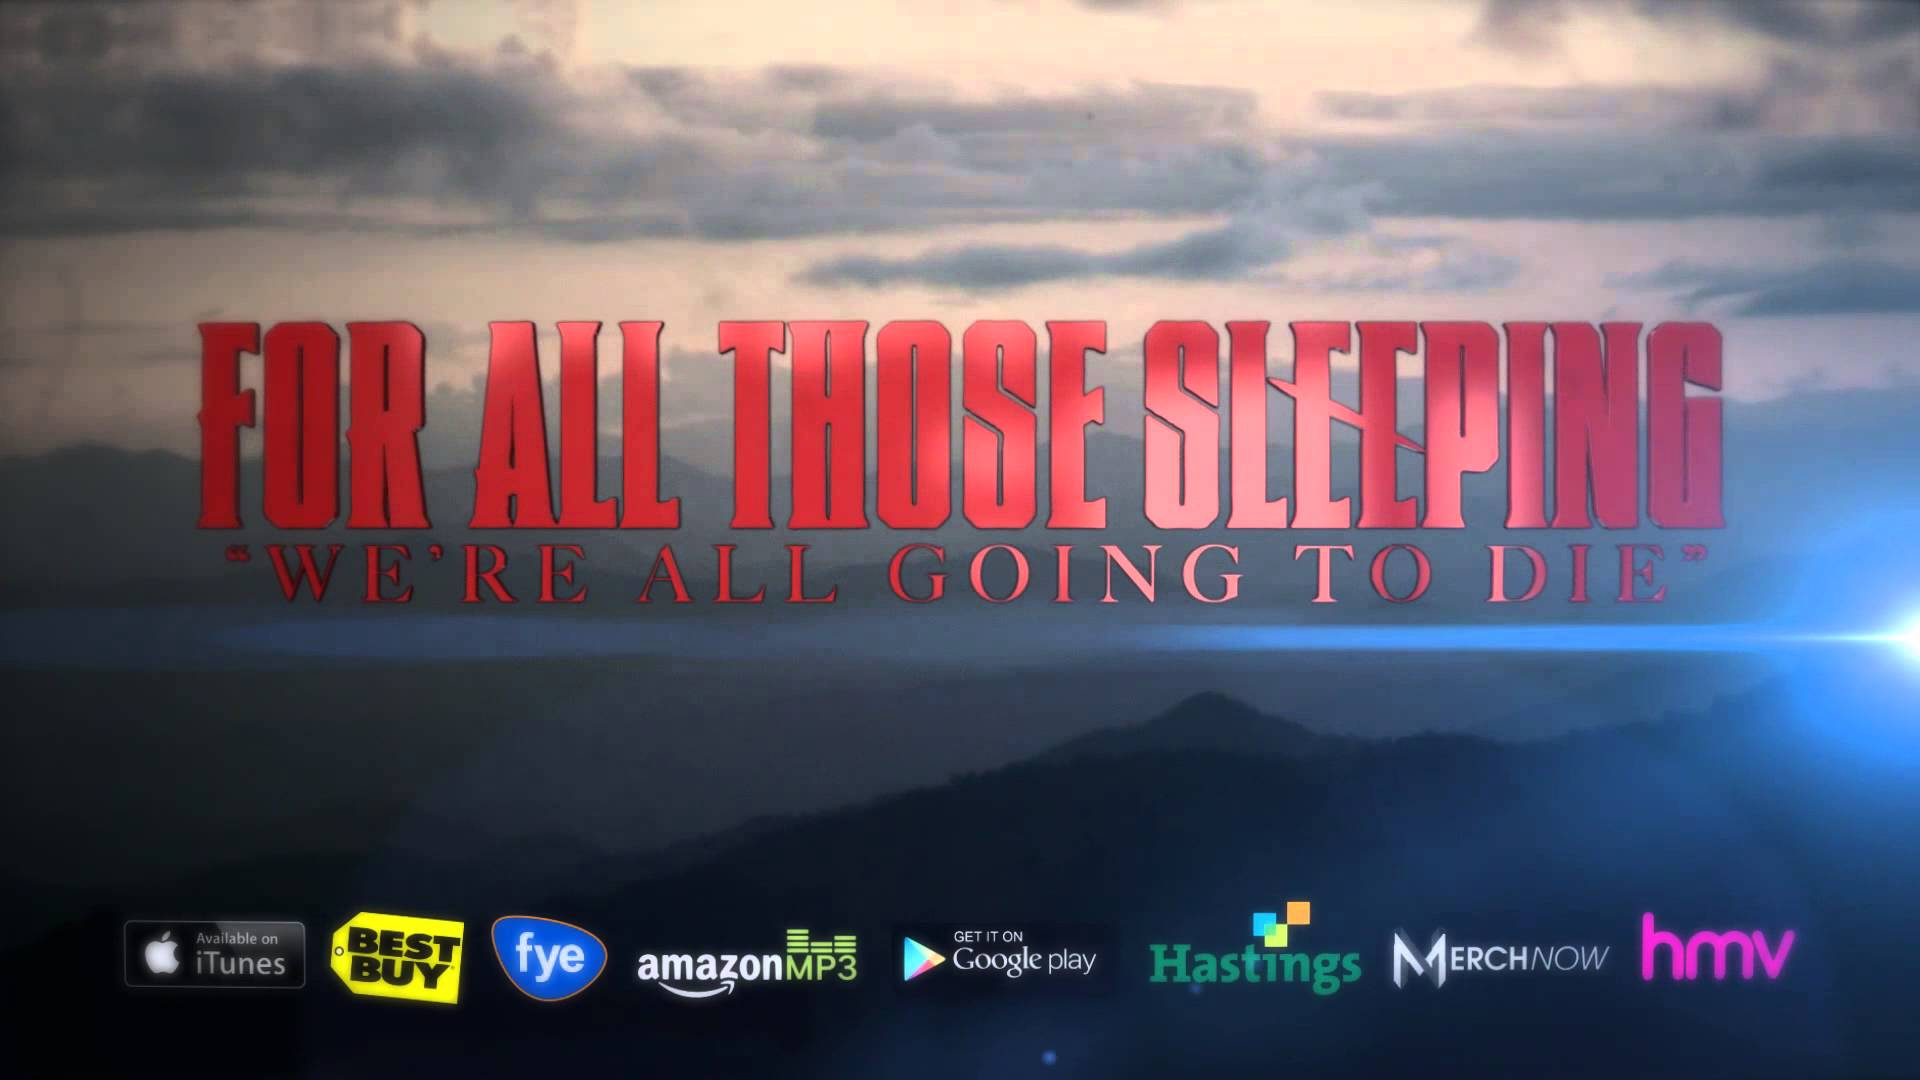 For All Those Sleeping - We're All Going To Die